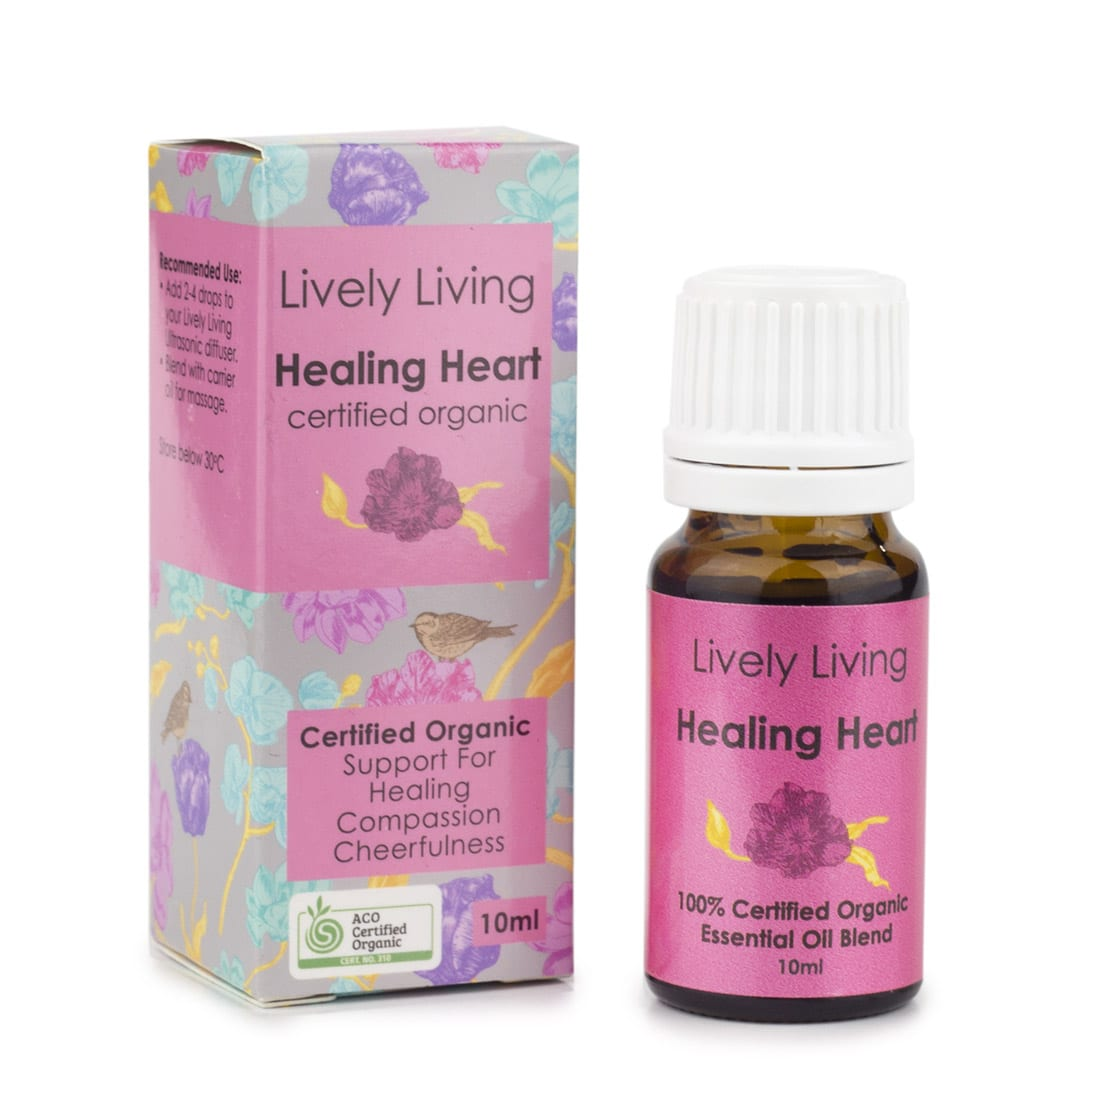 Lively Living Healing Heart